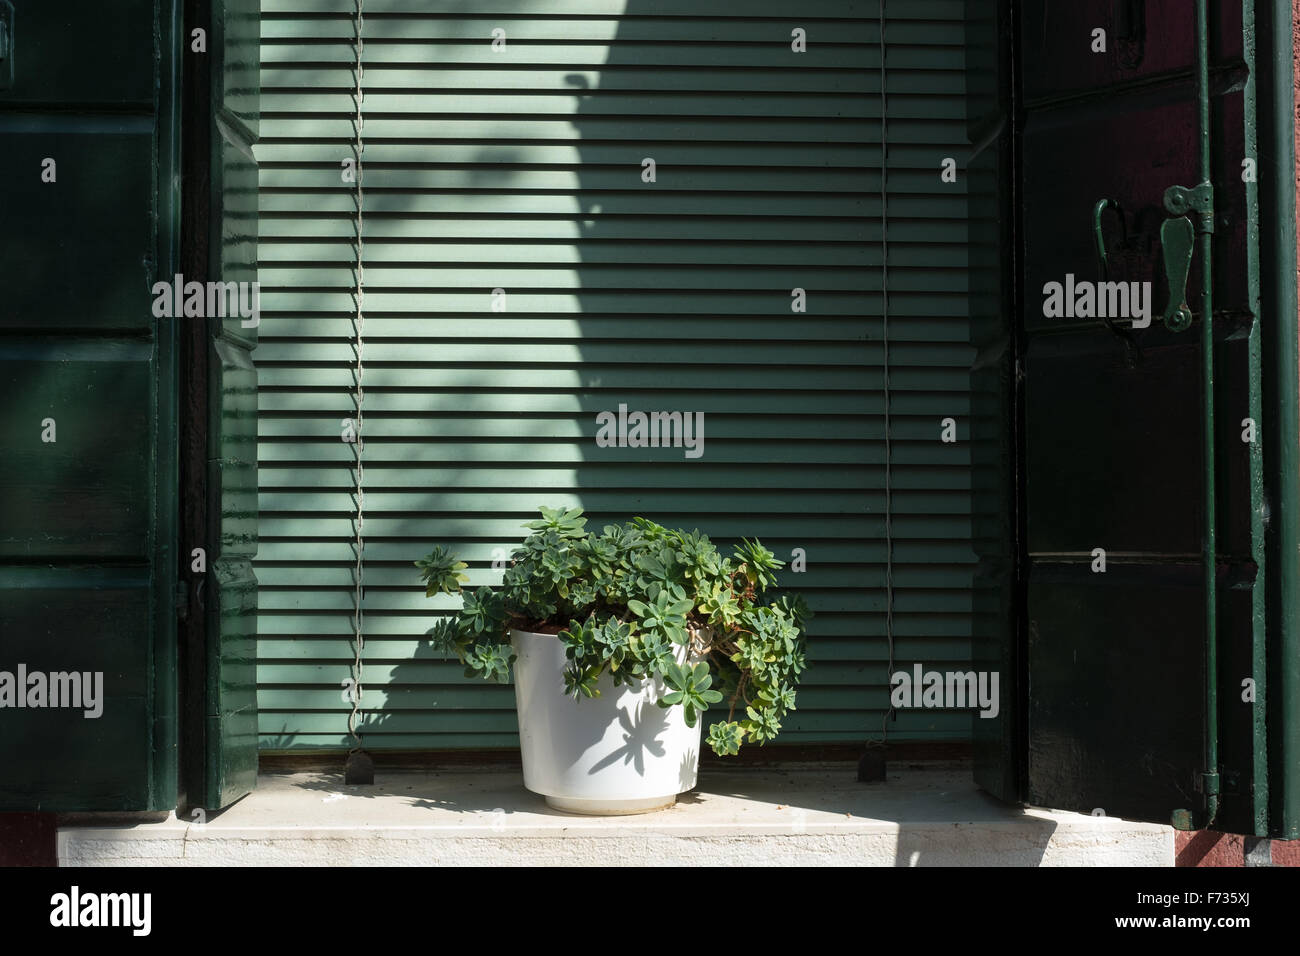 Potted plant on windowsill on The Island of Burano, Venice, Italy. - Stock Image